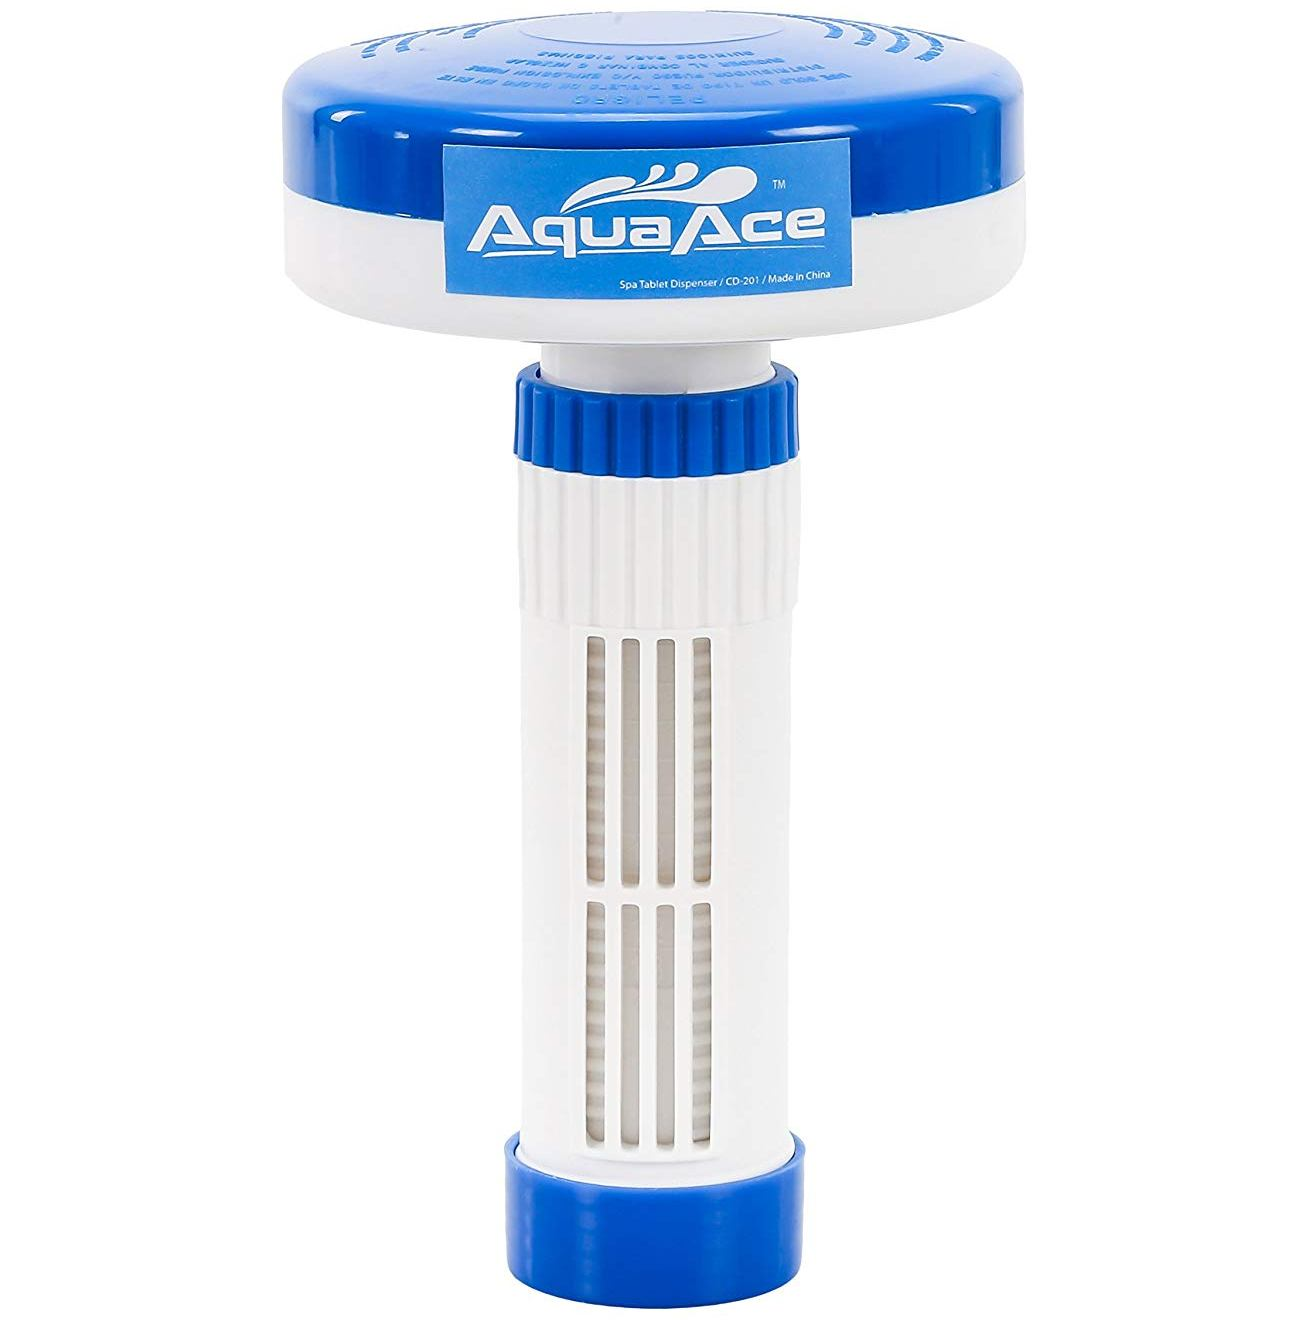 aquaace floating dispenser